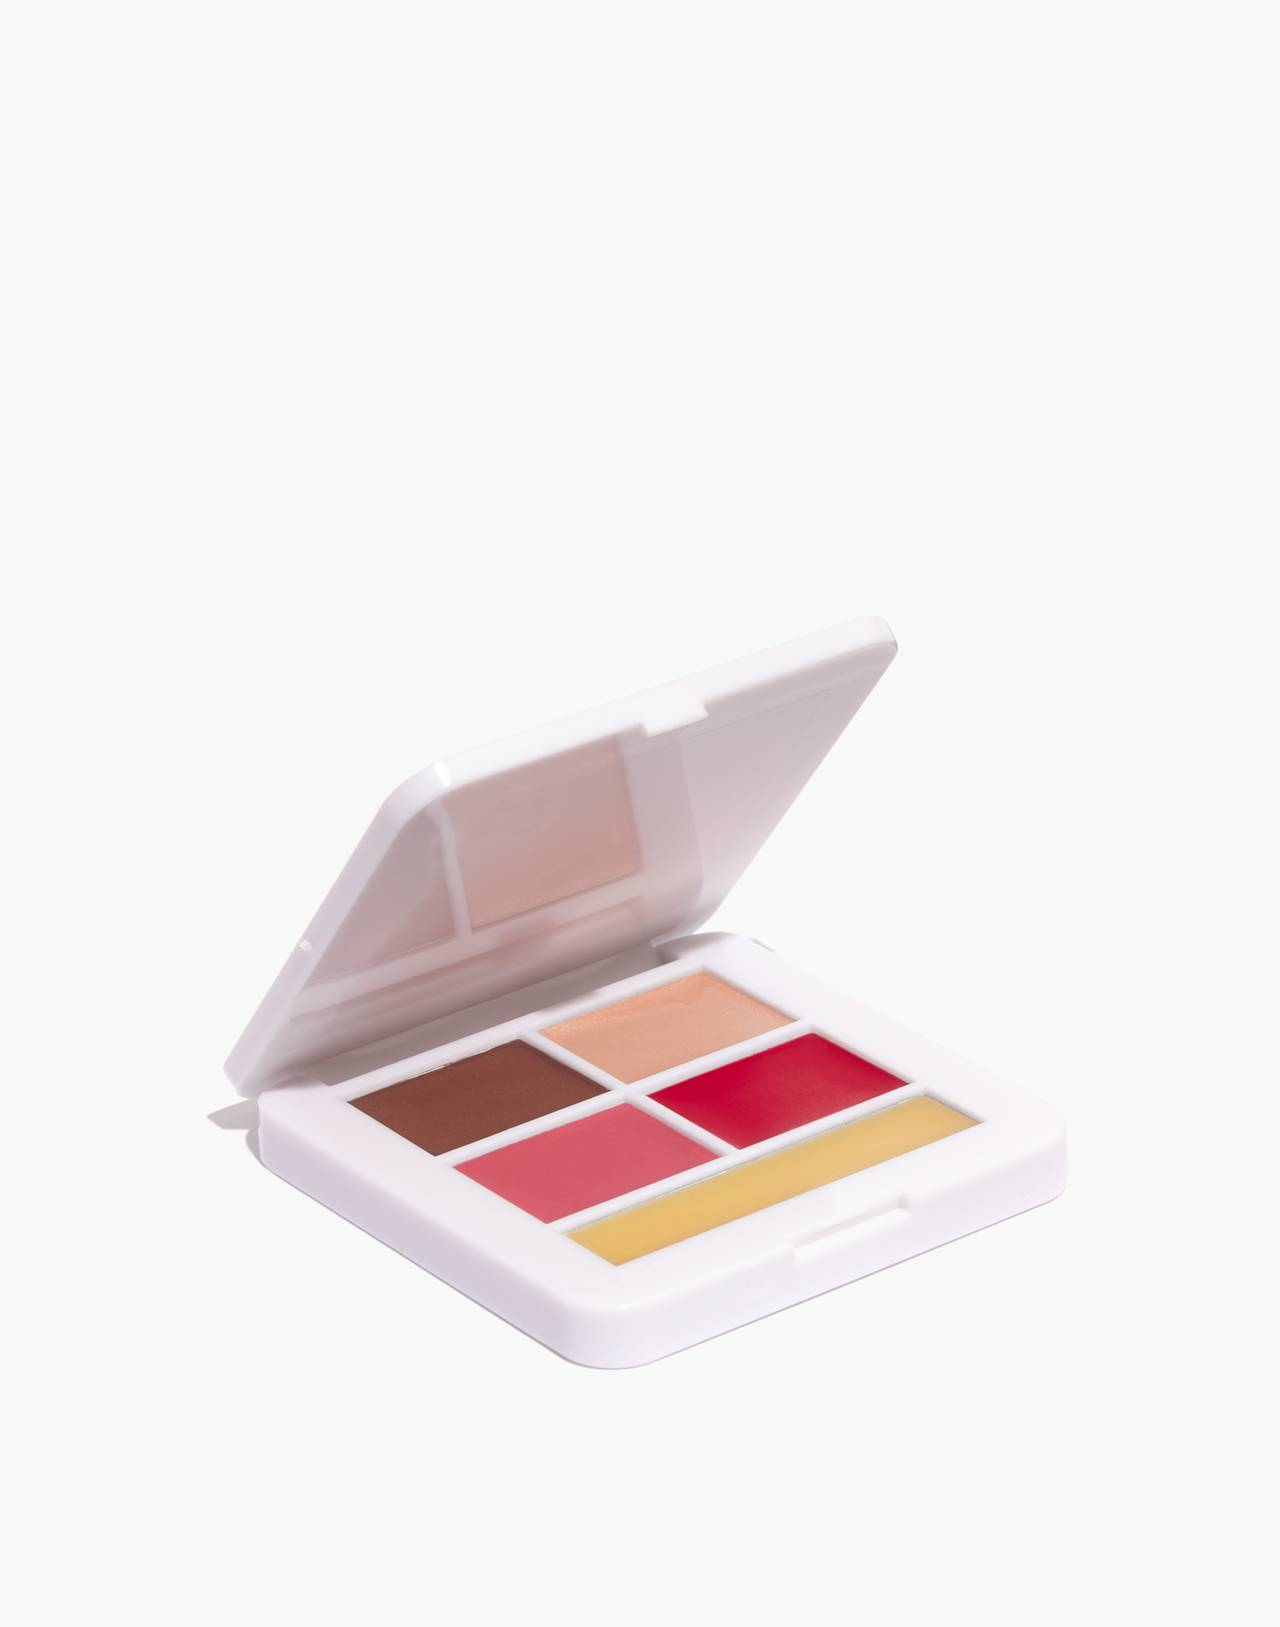 RMS Beauty® Gift Set in pop image 1